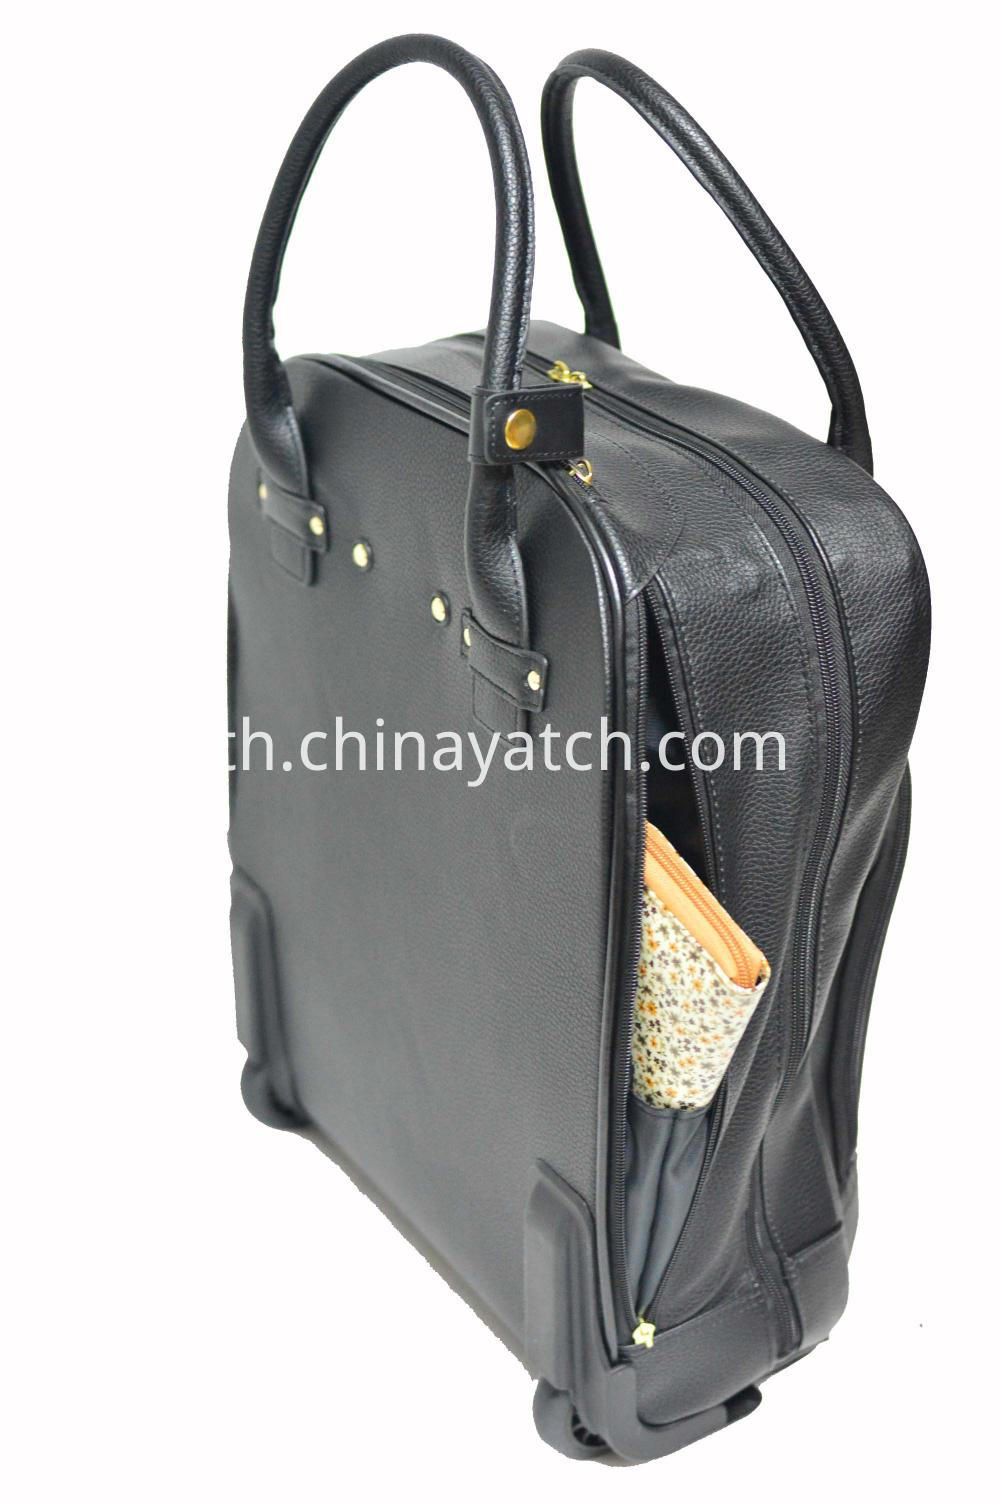 PU Luggage Weekend Bag Travel Tote Bag